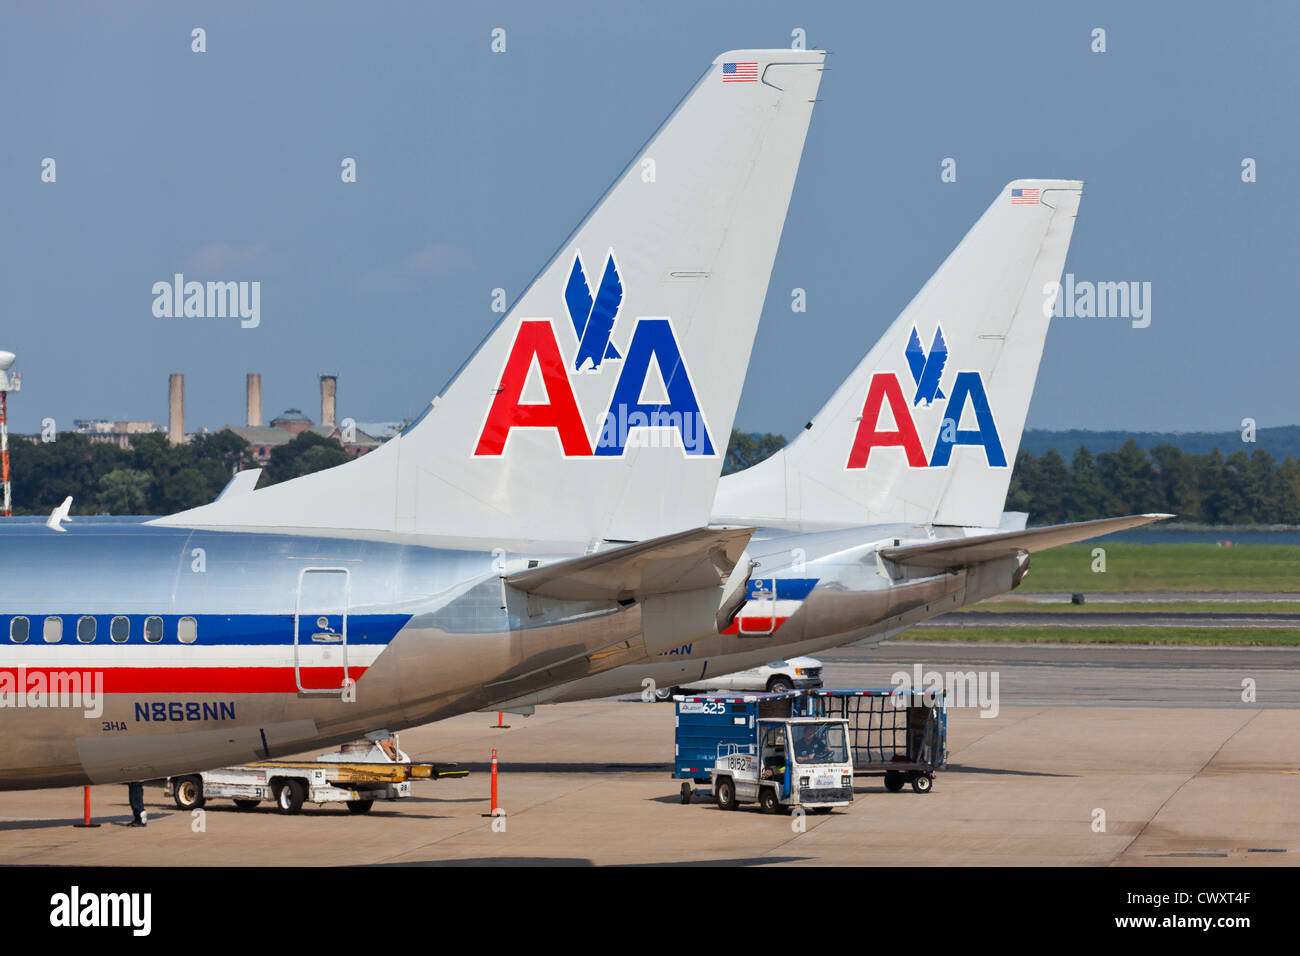 Vertical stabilizers of parked American Airlines jets - Ronald Reagan National Airport - Washington, DC USA - Stock Image